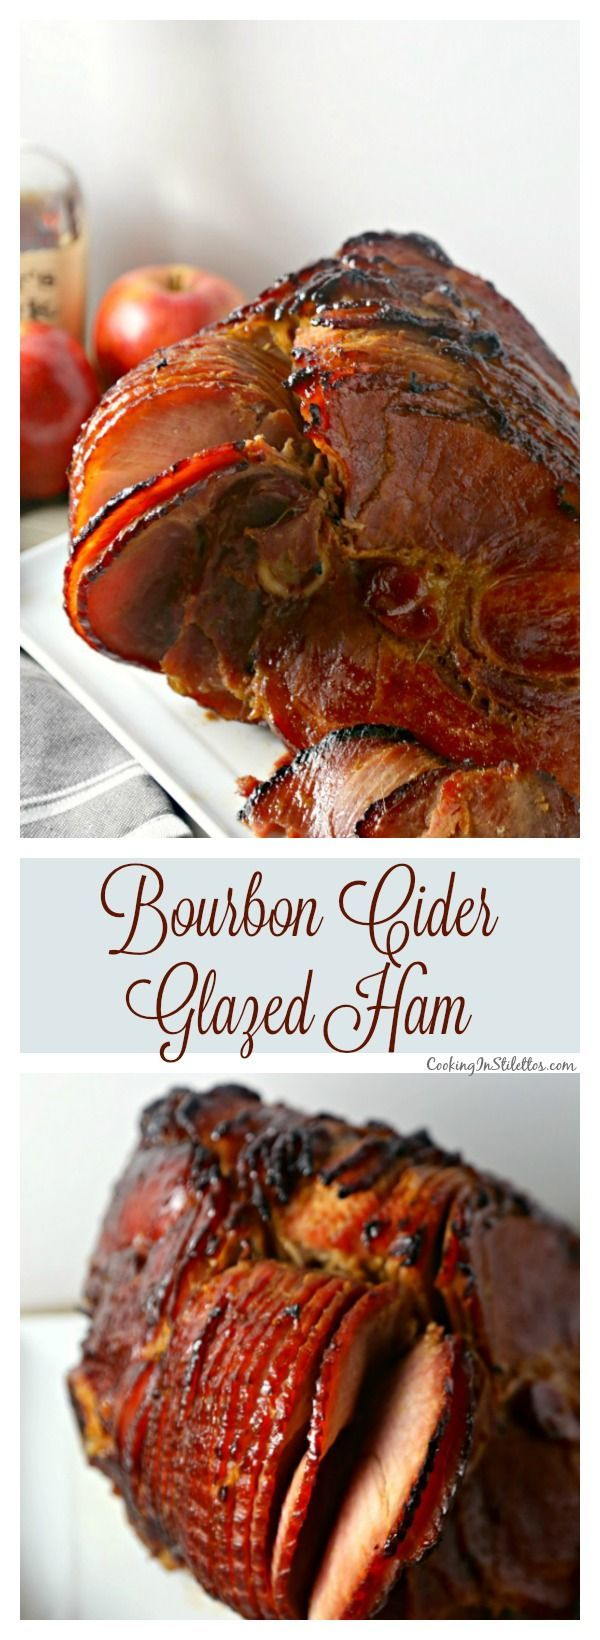 Bourbon Cider Glazed Ham from CookingInStilettos.com is the perfect holiday ham recipe!  Just a few ingredients is all you need for a ham glazed to perfection with a hint of smoky sweetness!  Ham | Bourbon | Apple Cider | Easy Recipe | Holiday | Easter  via @CookInStilettos